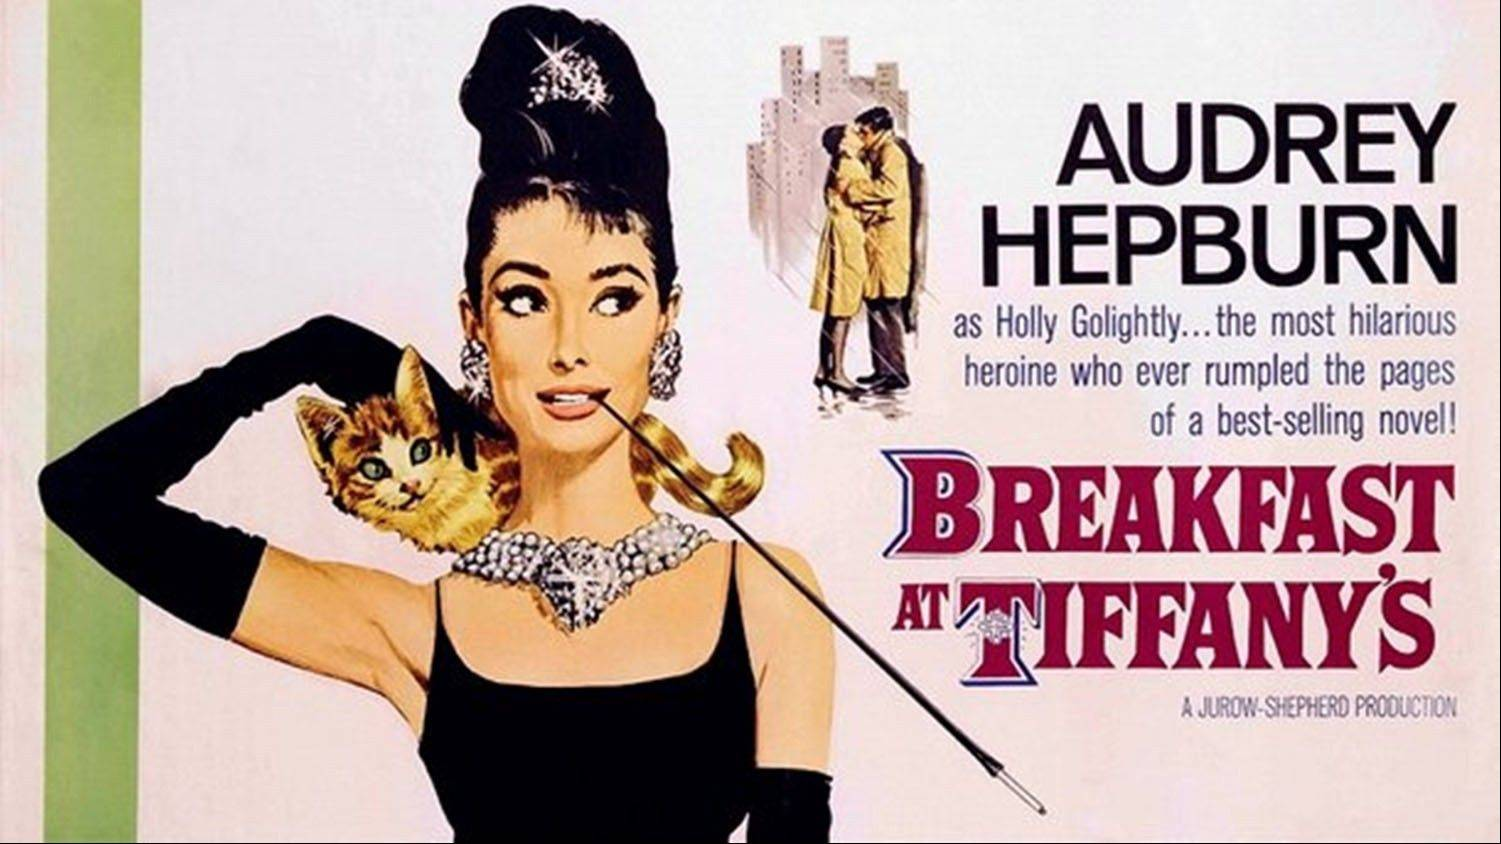 �Breakfast at Tiffany�s starring Audrey Hepburn will be inducted into the National Film Registry.